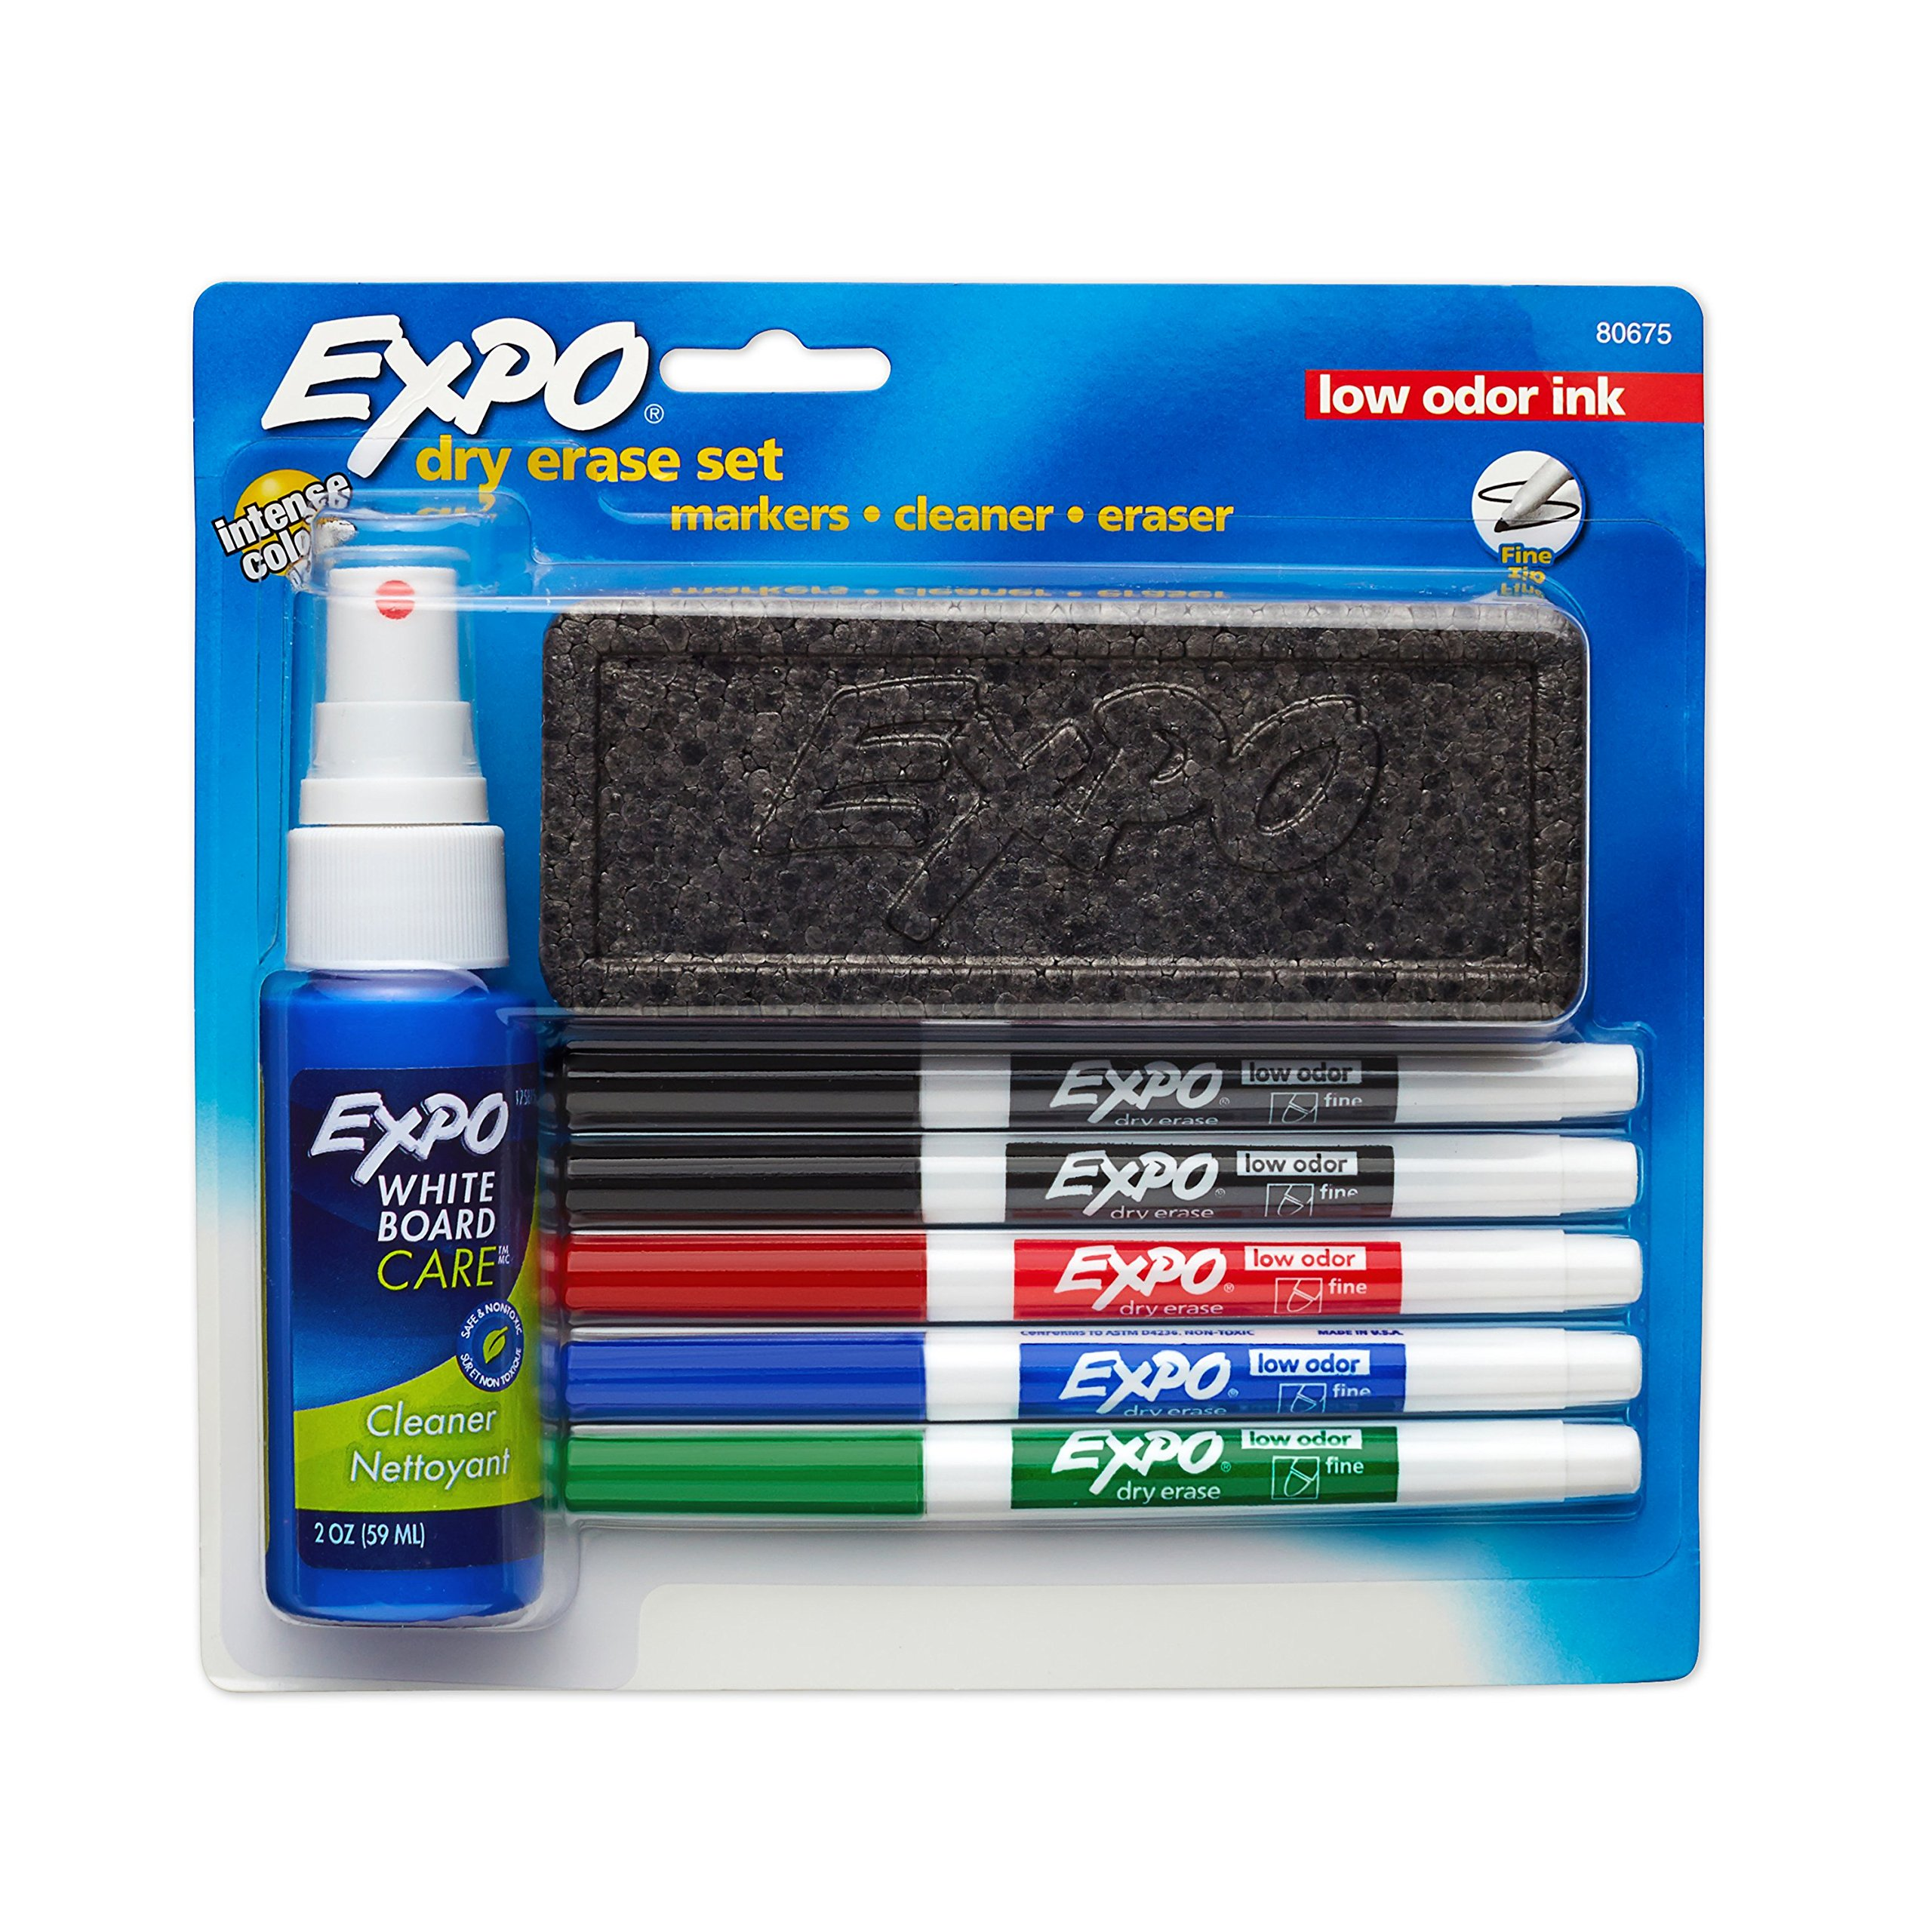 Expo Low Odor Dry Erase Marker Set with White Board Eraser and Cleaner | Fine Tip Dry Erase Markers | Assorted Colors, 7 Piece Set with Whiteboard Cleaner